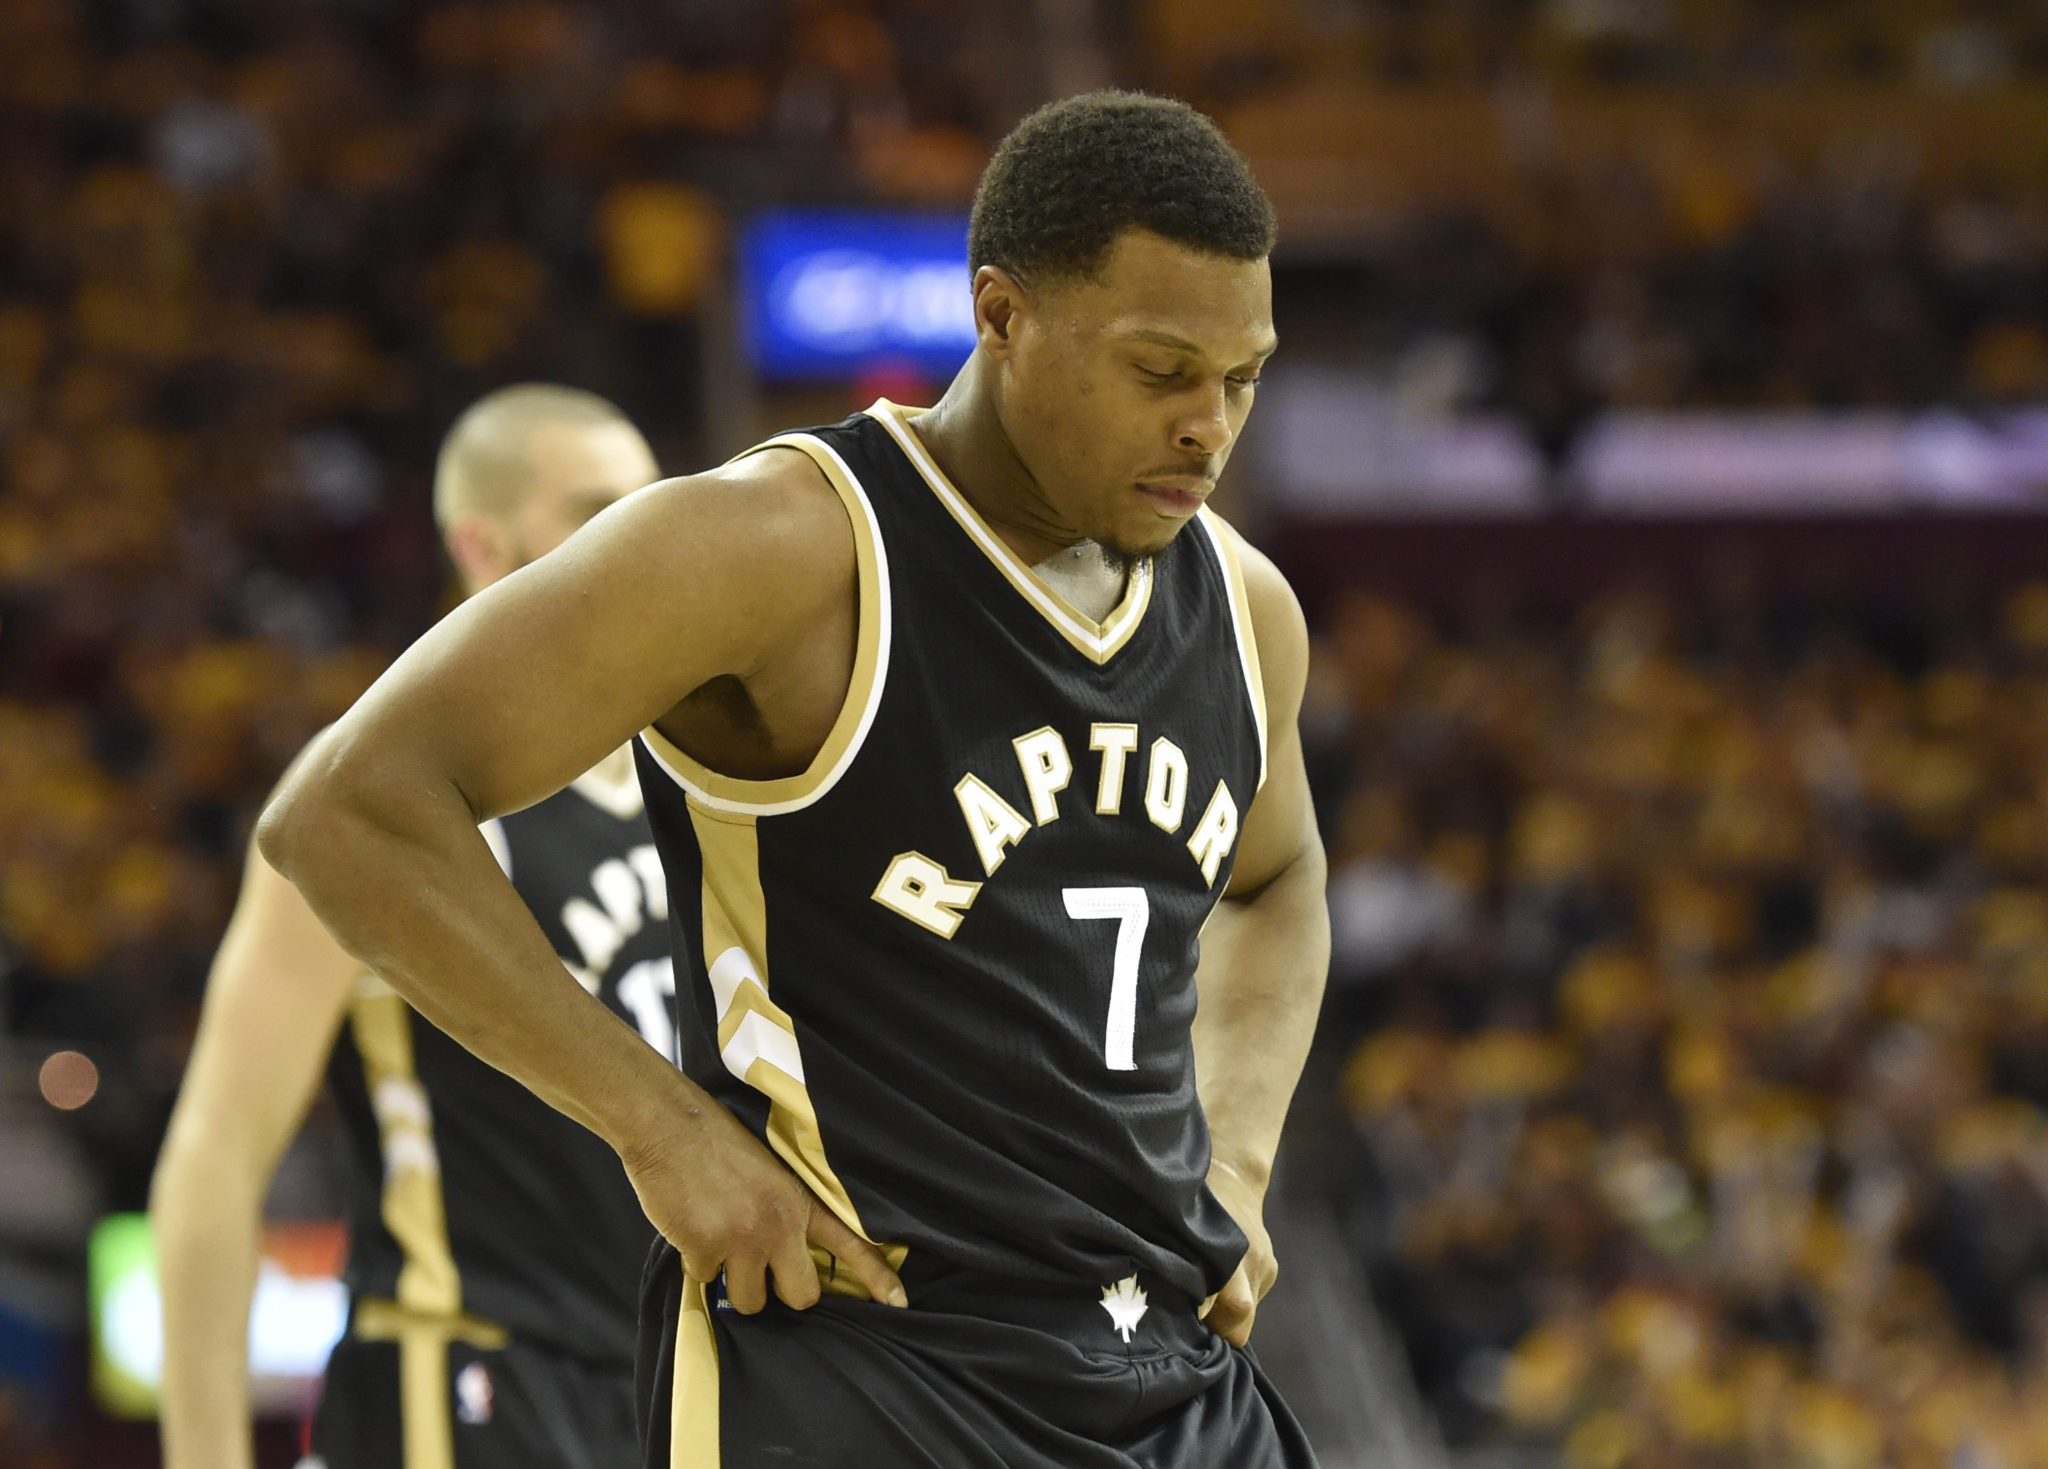 Sore ankle keeps Raptors G Lowry out of starting lineup